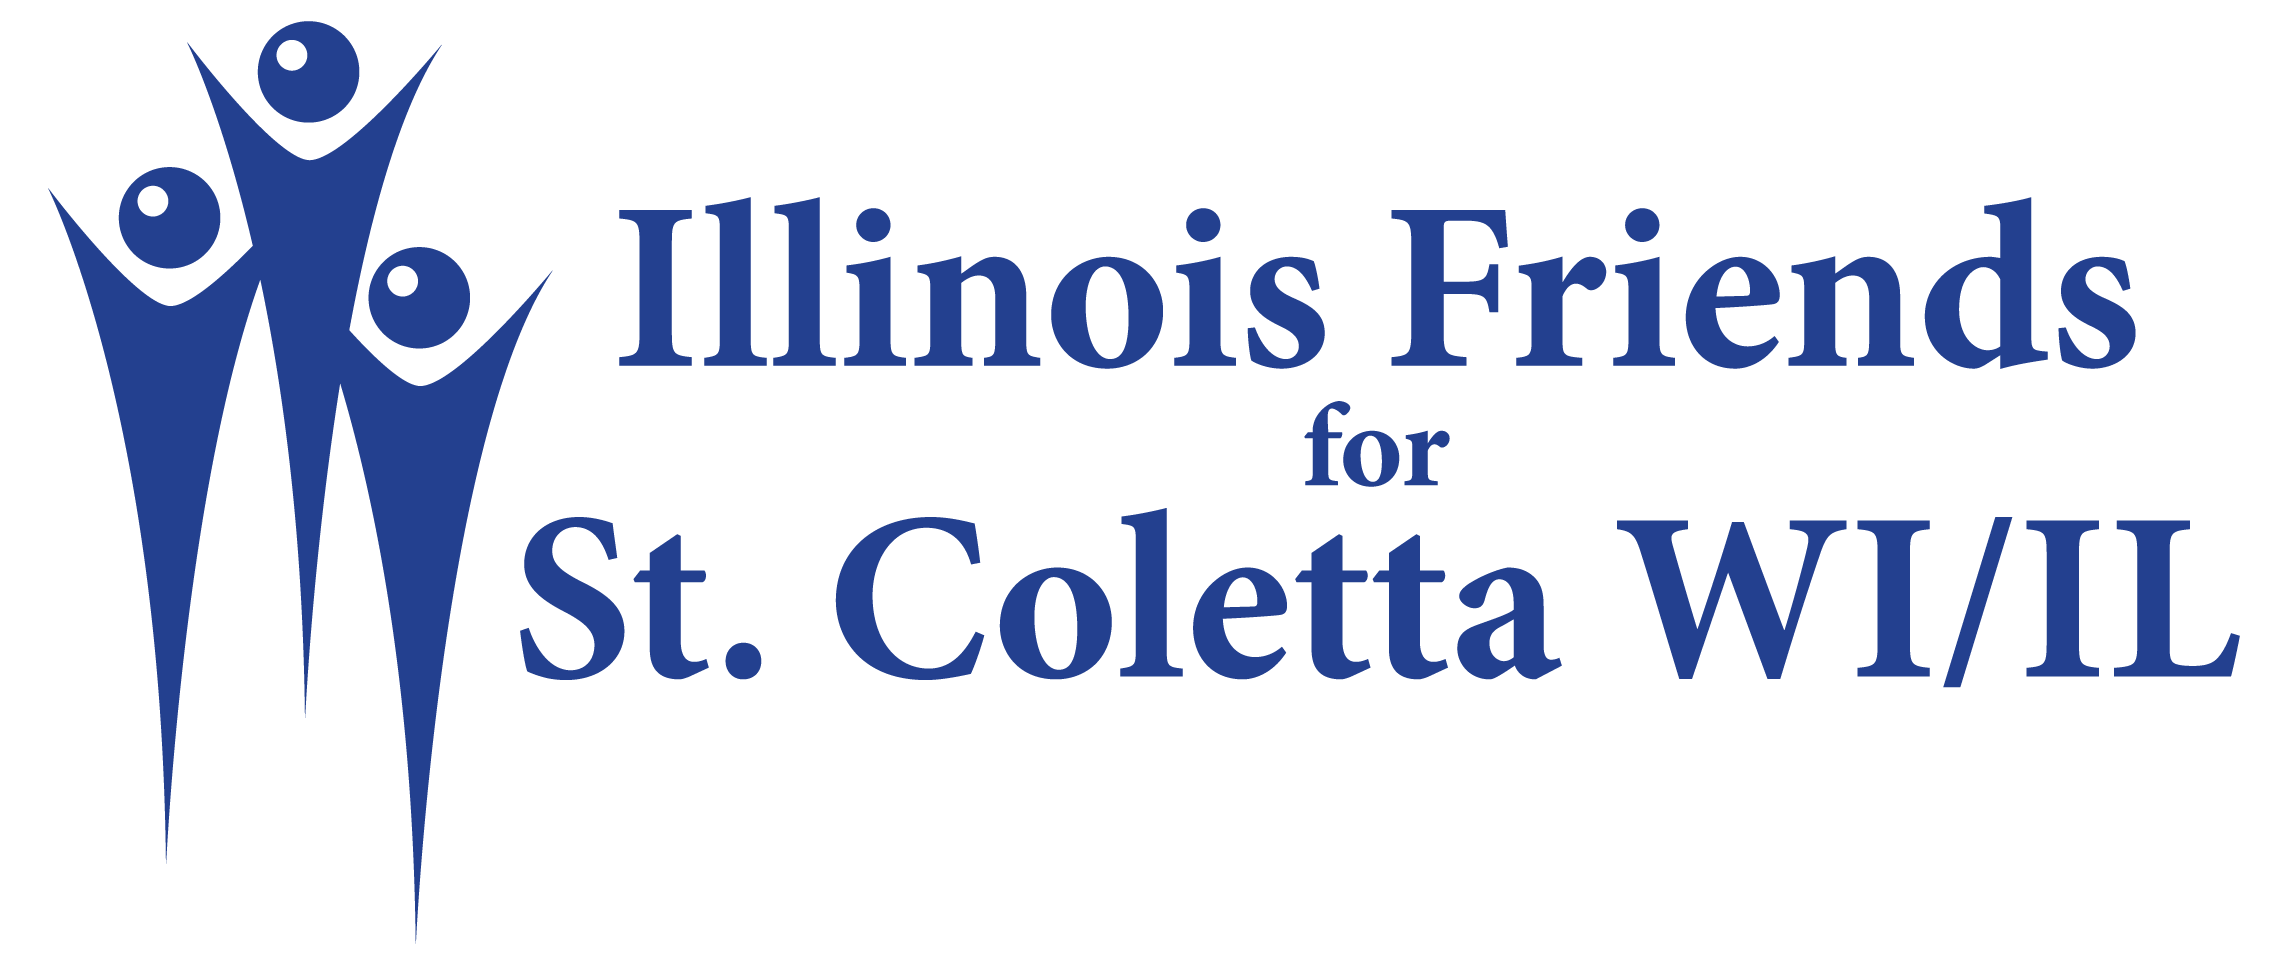 Illinois Friends for St. Coletta - WI/IL